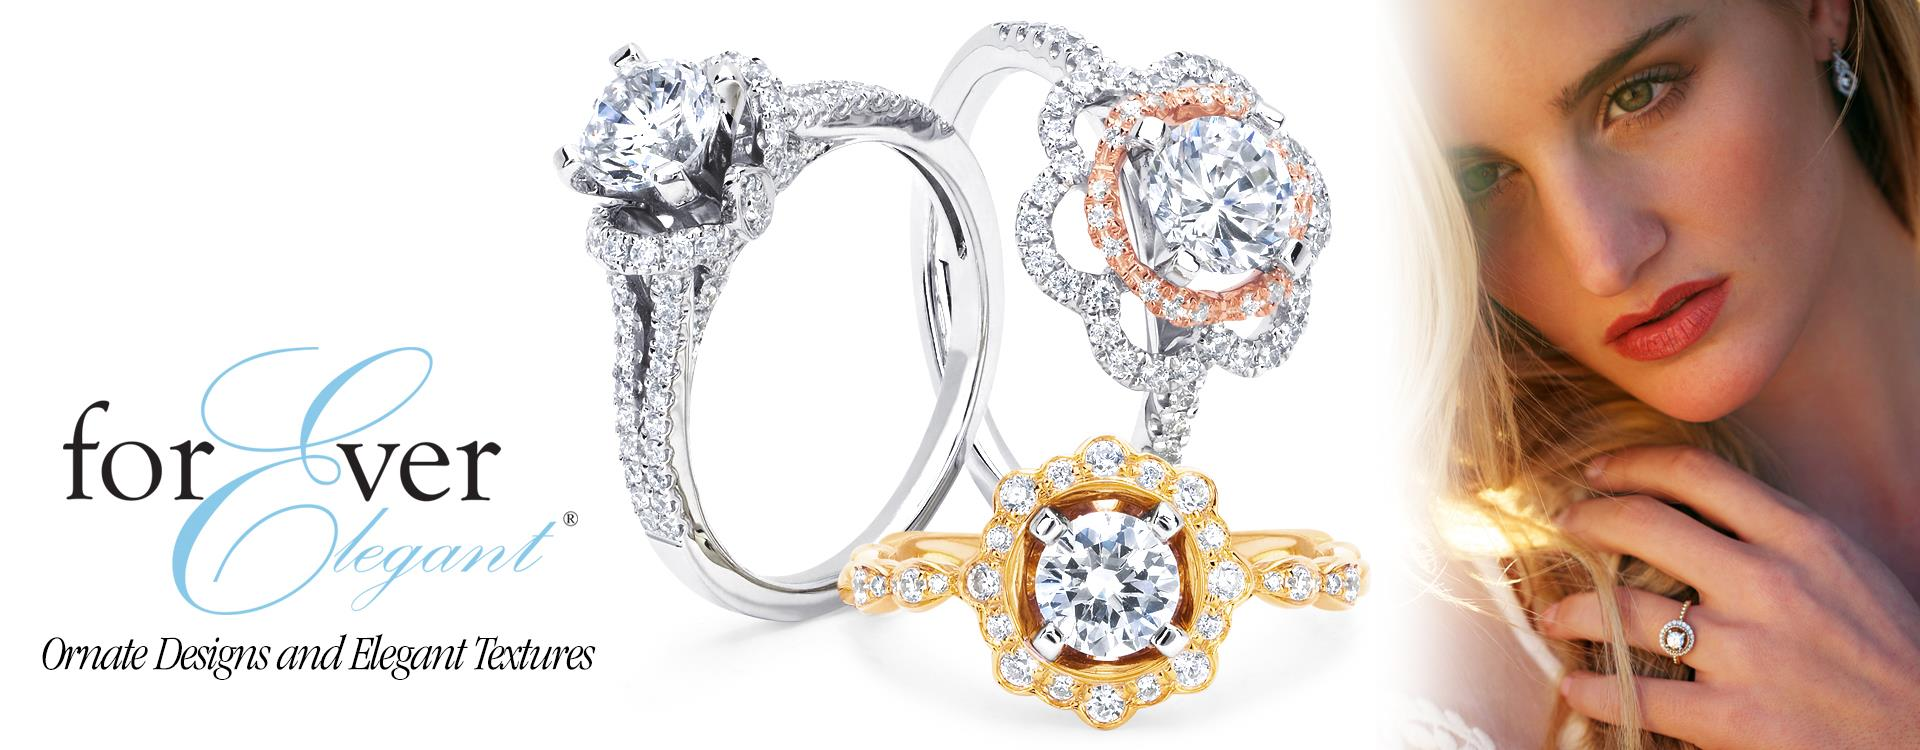 blog rings ring famous cushion ritani celebrity designer cut engagement rancic giuliana